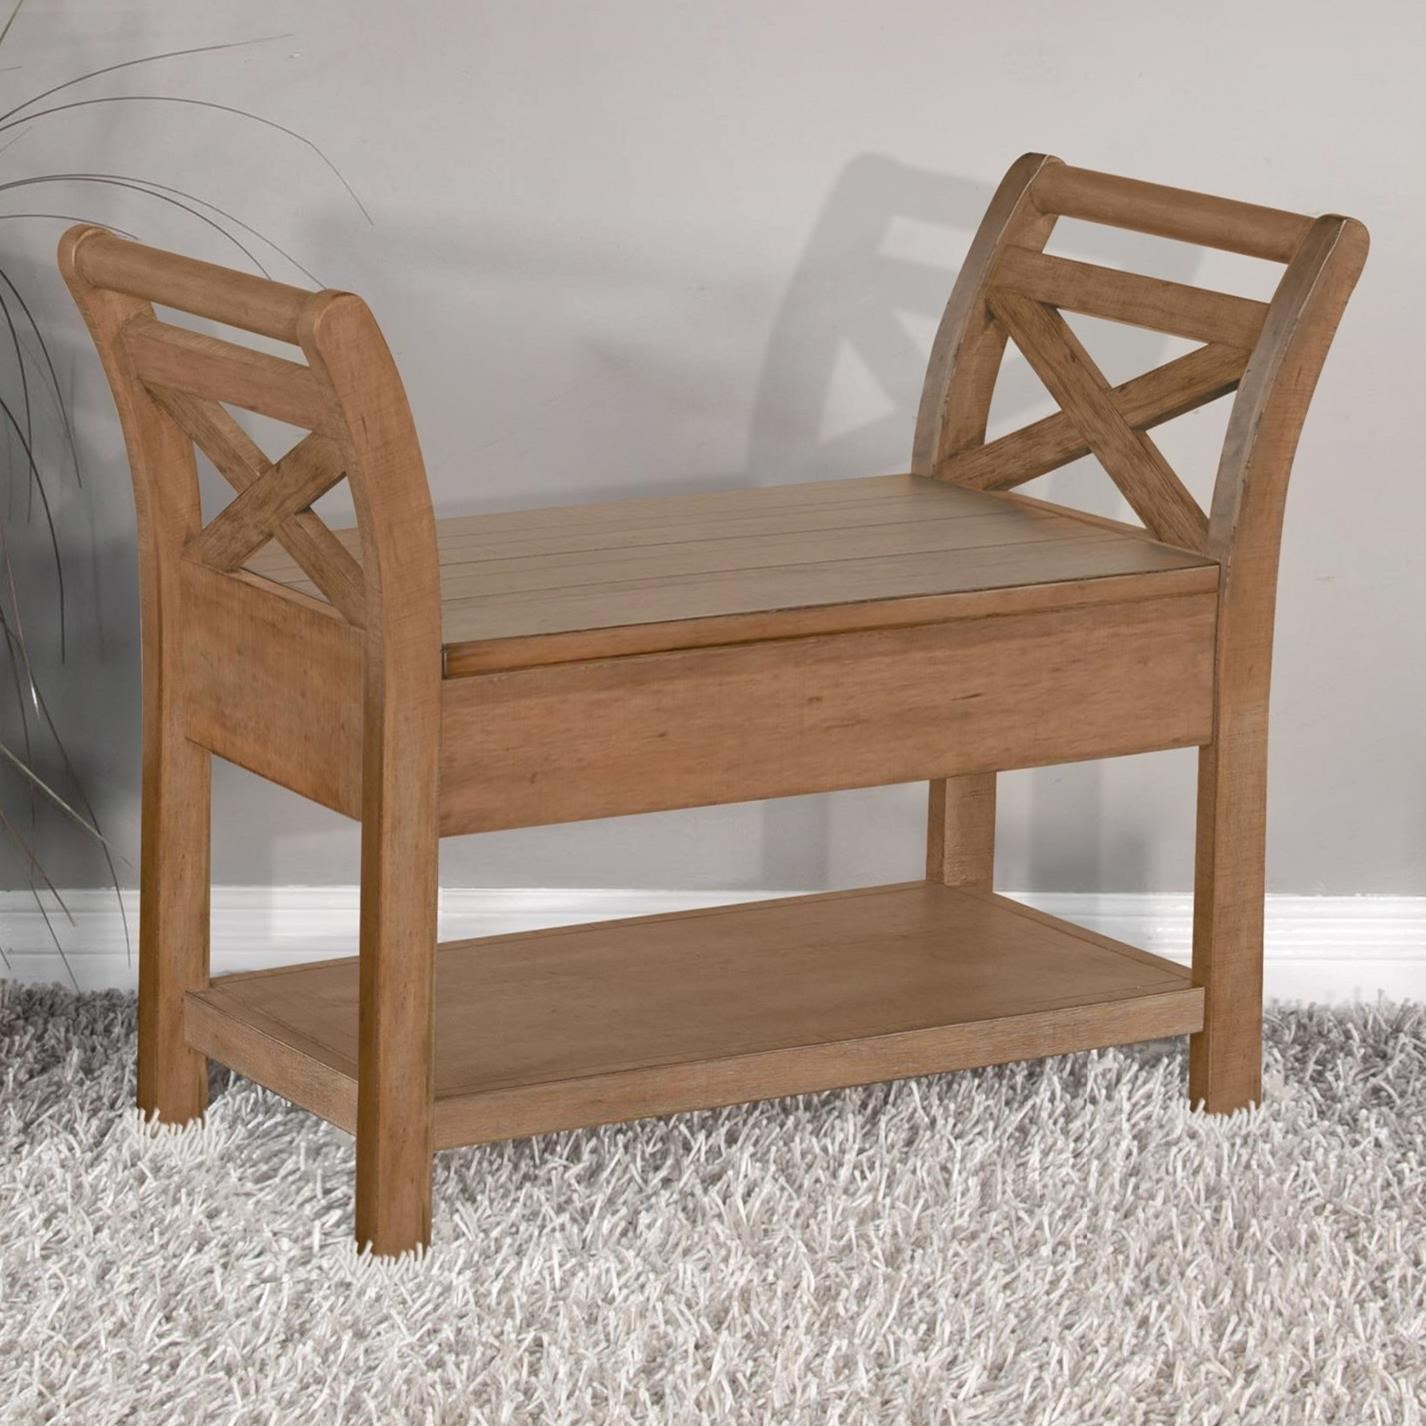 2075 Accent Bench with Storage by Sunny Designs at Wayside Furniture